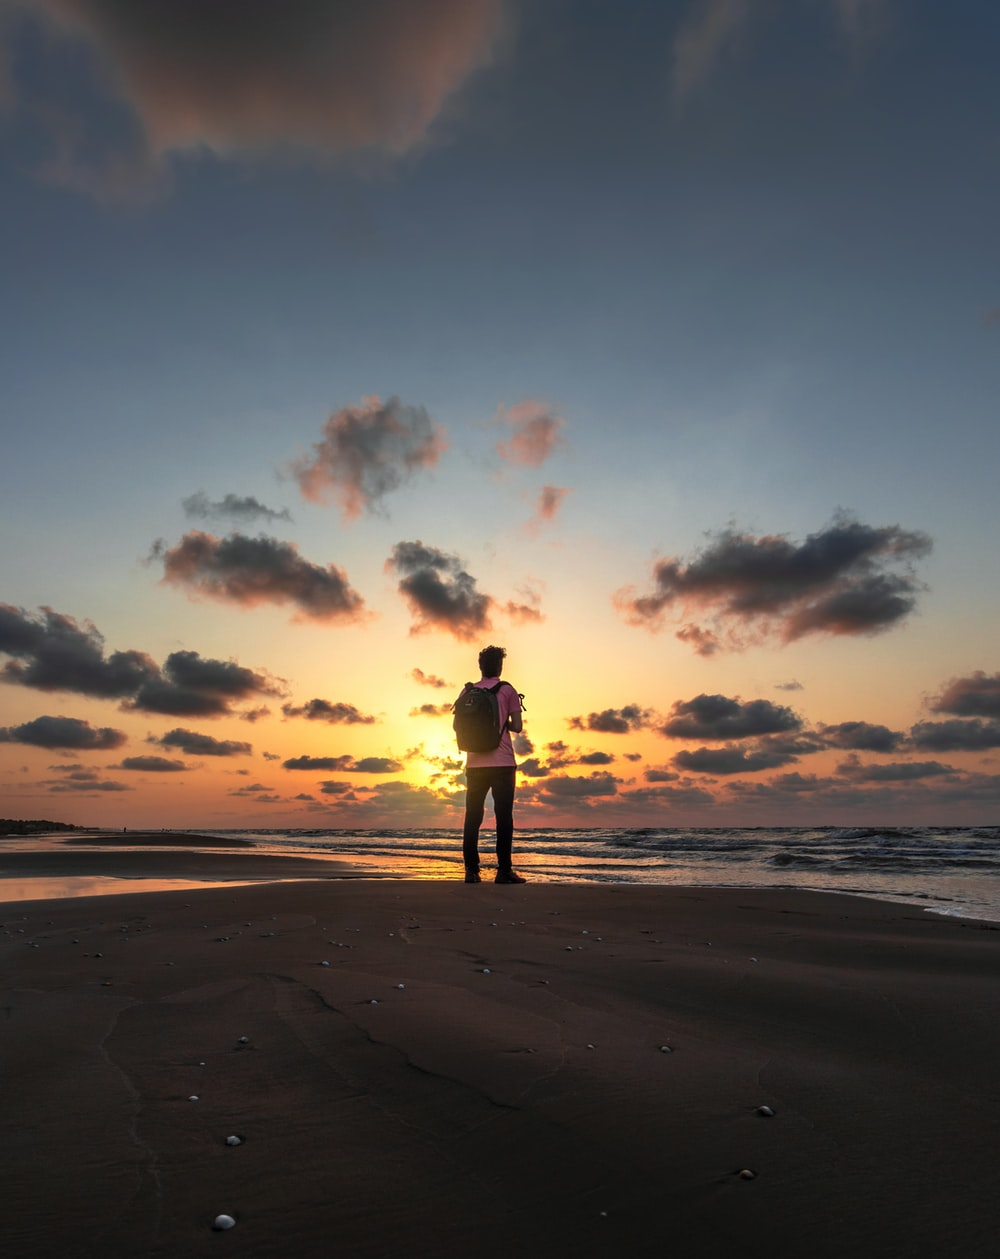 silhouette of person standing on beach during sunset